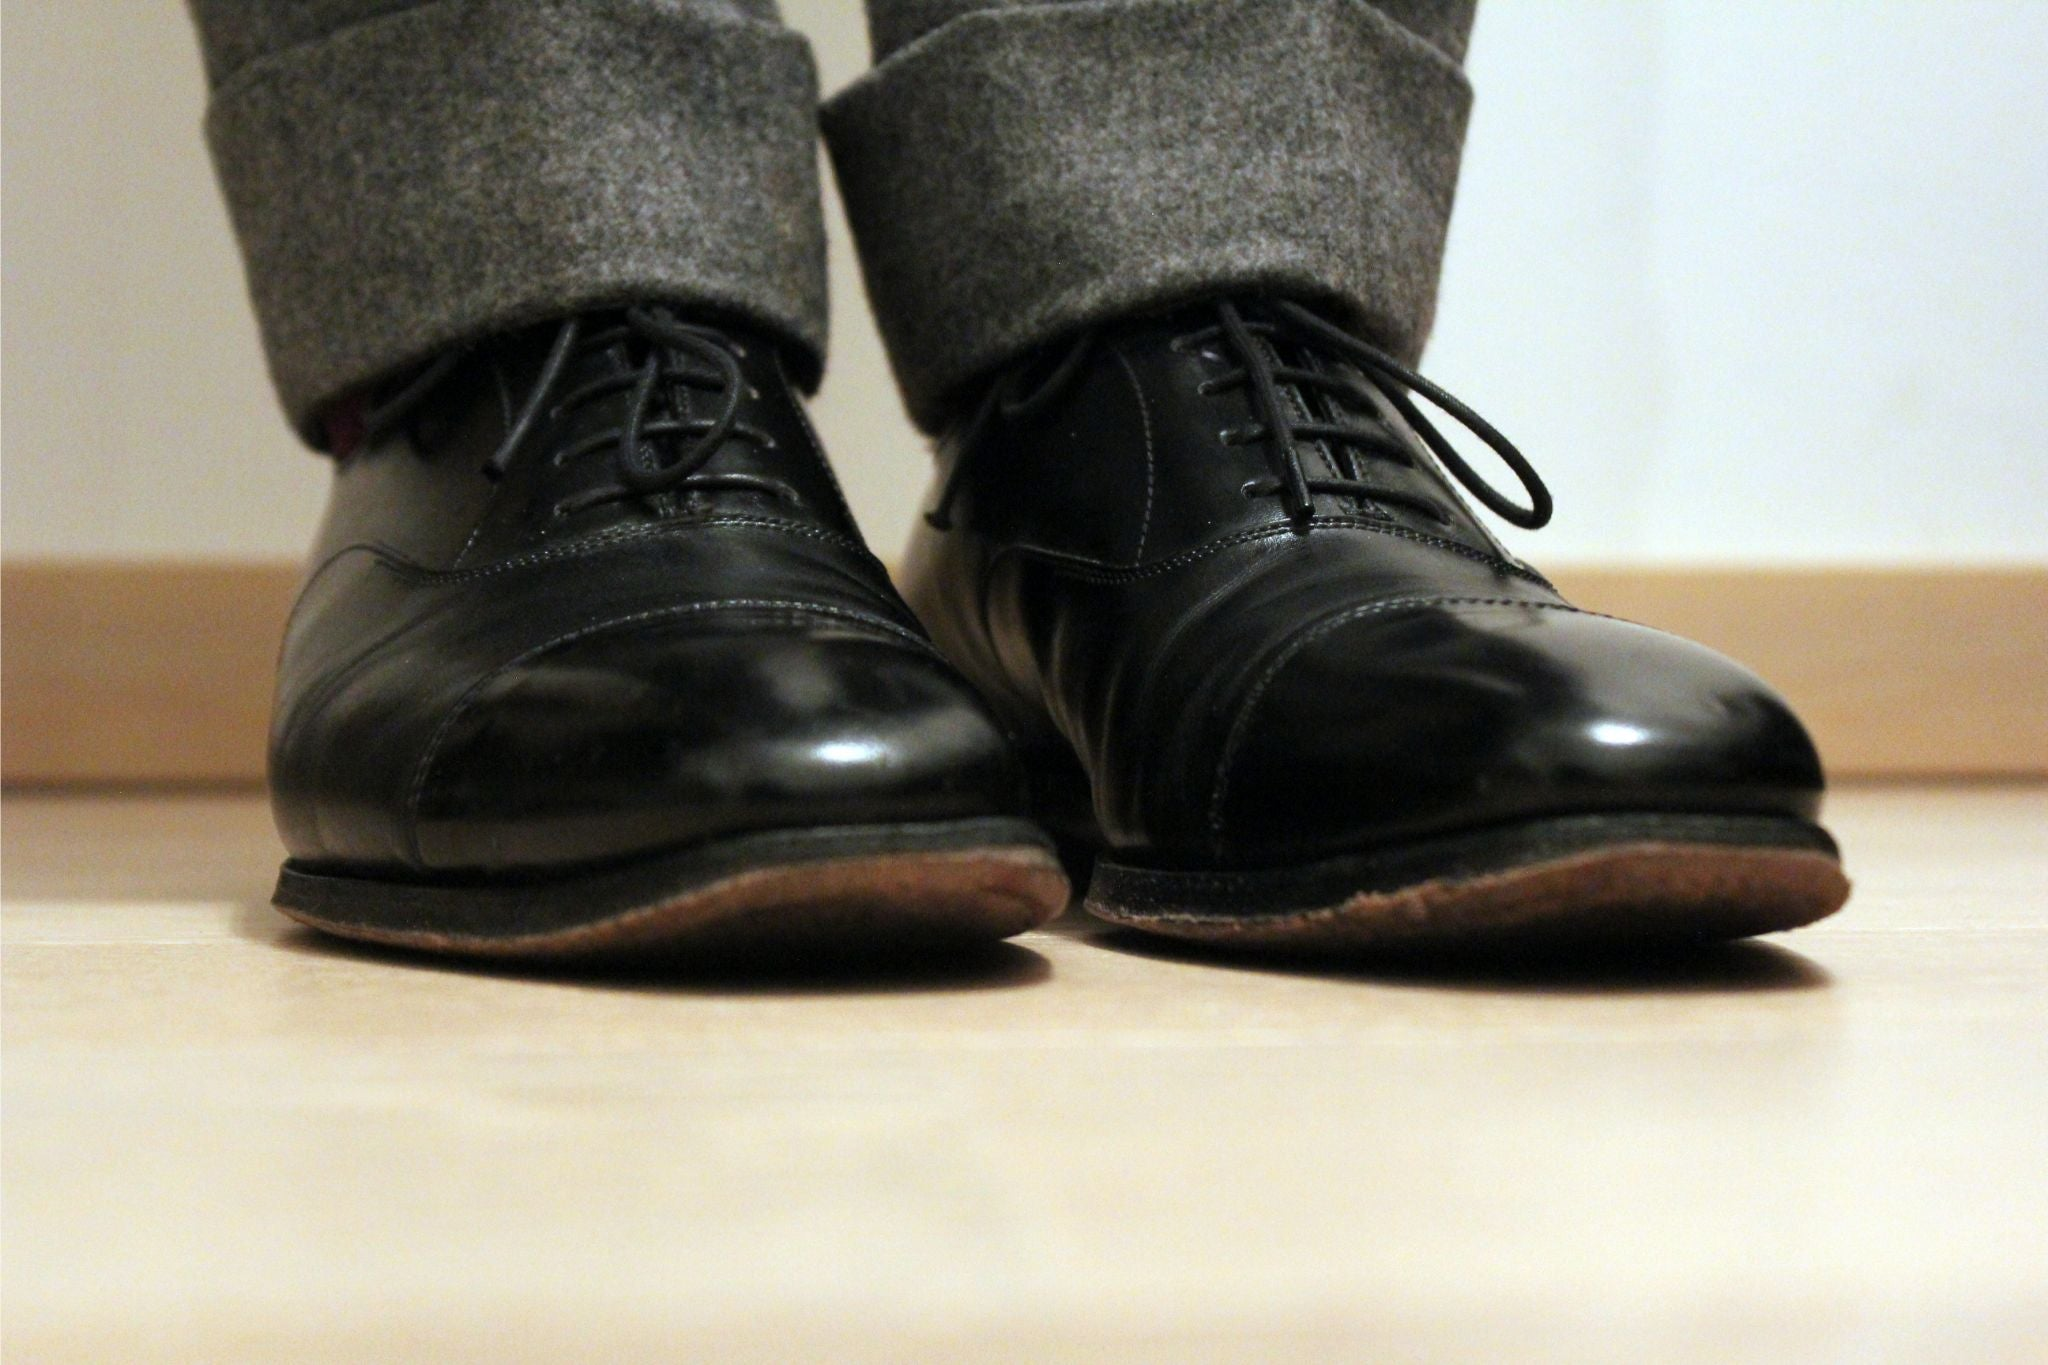 Black oxford shoes - Alfred Sargent